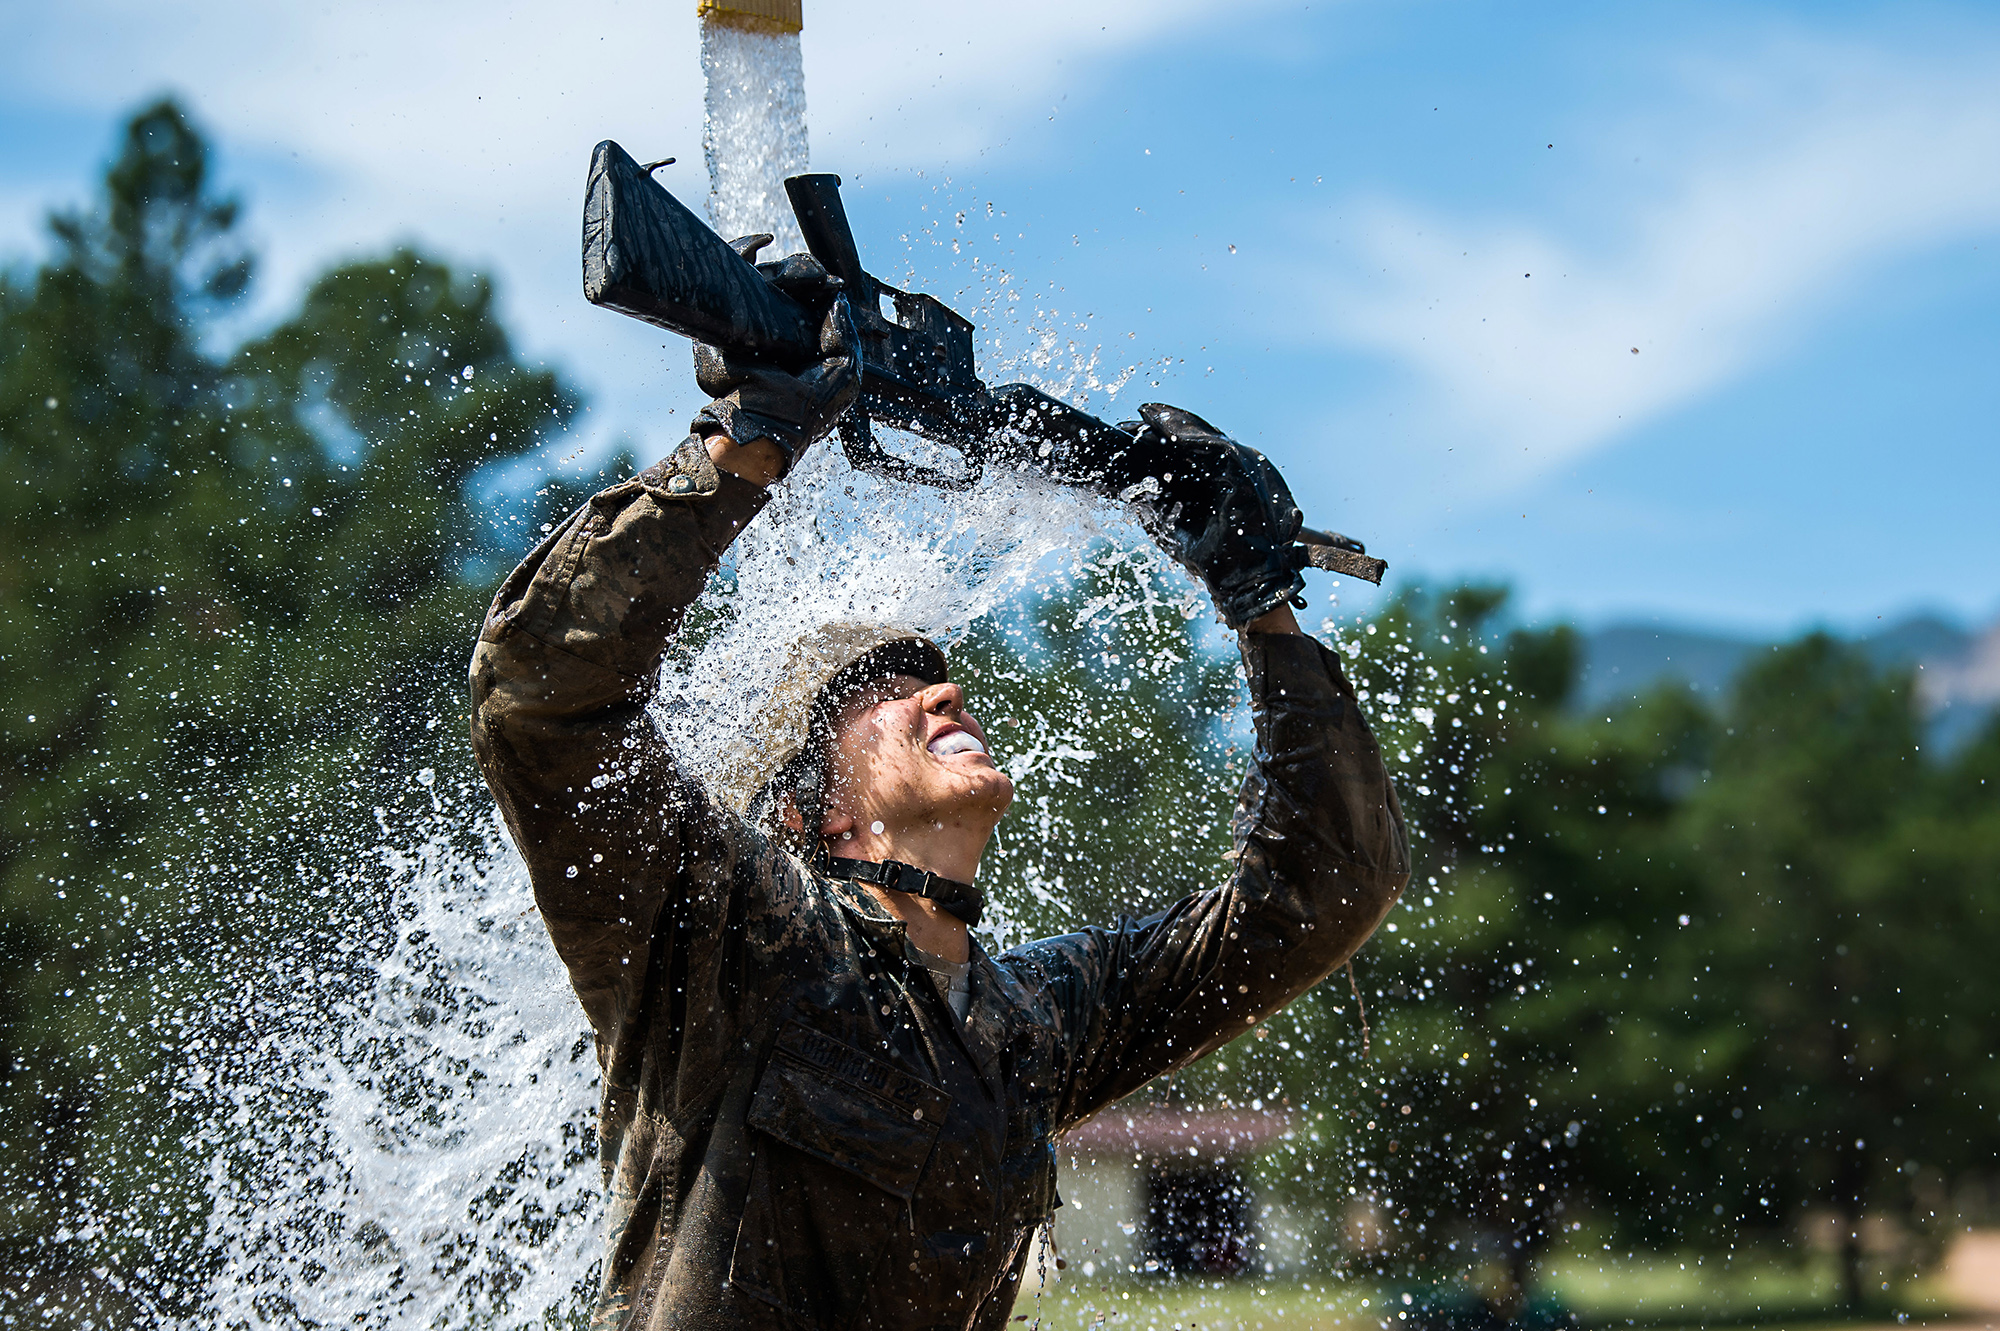 U.S. Air Force Academy Class of 2024 basic cadets complete the assault course at the U.S. Air Force Academy in Colorado Springs, Colo., July 14, 2020. (Trevor Cokley/Air Force)